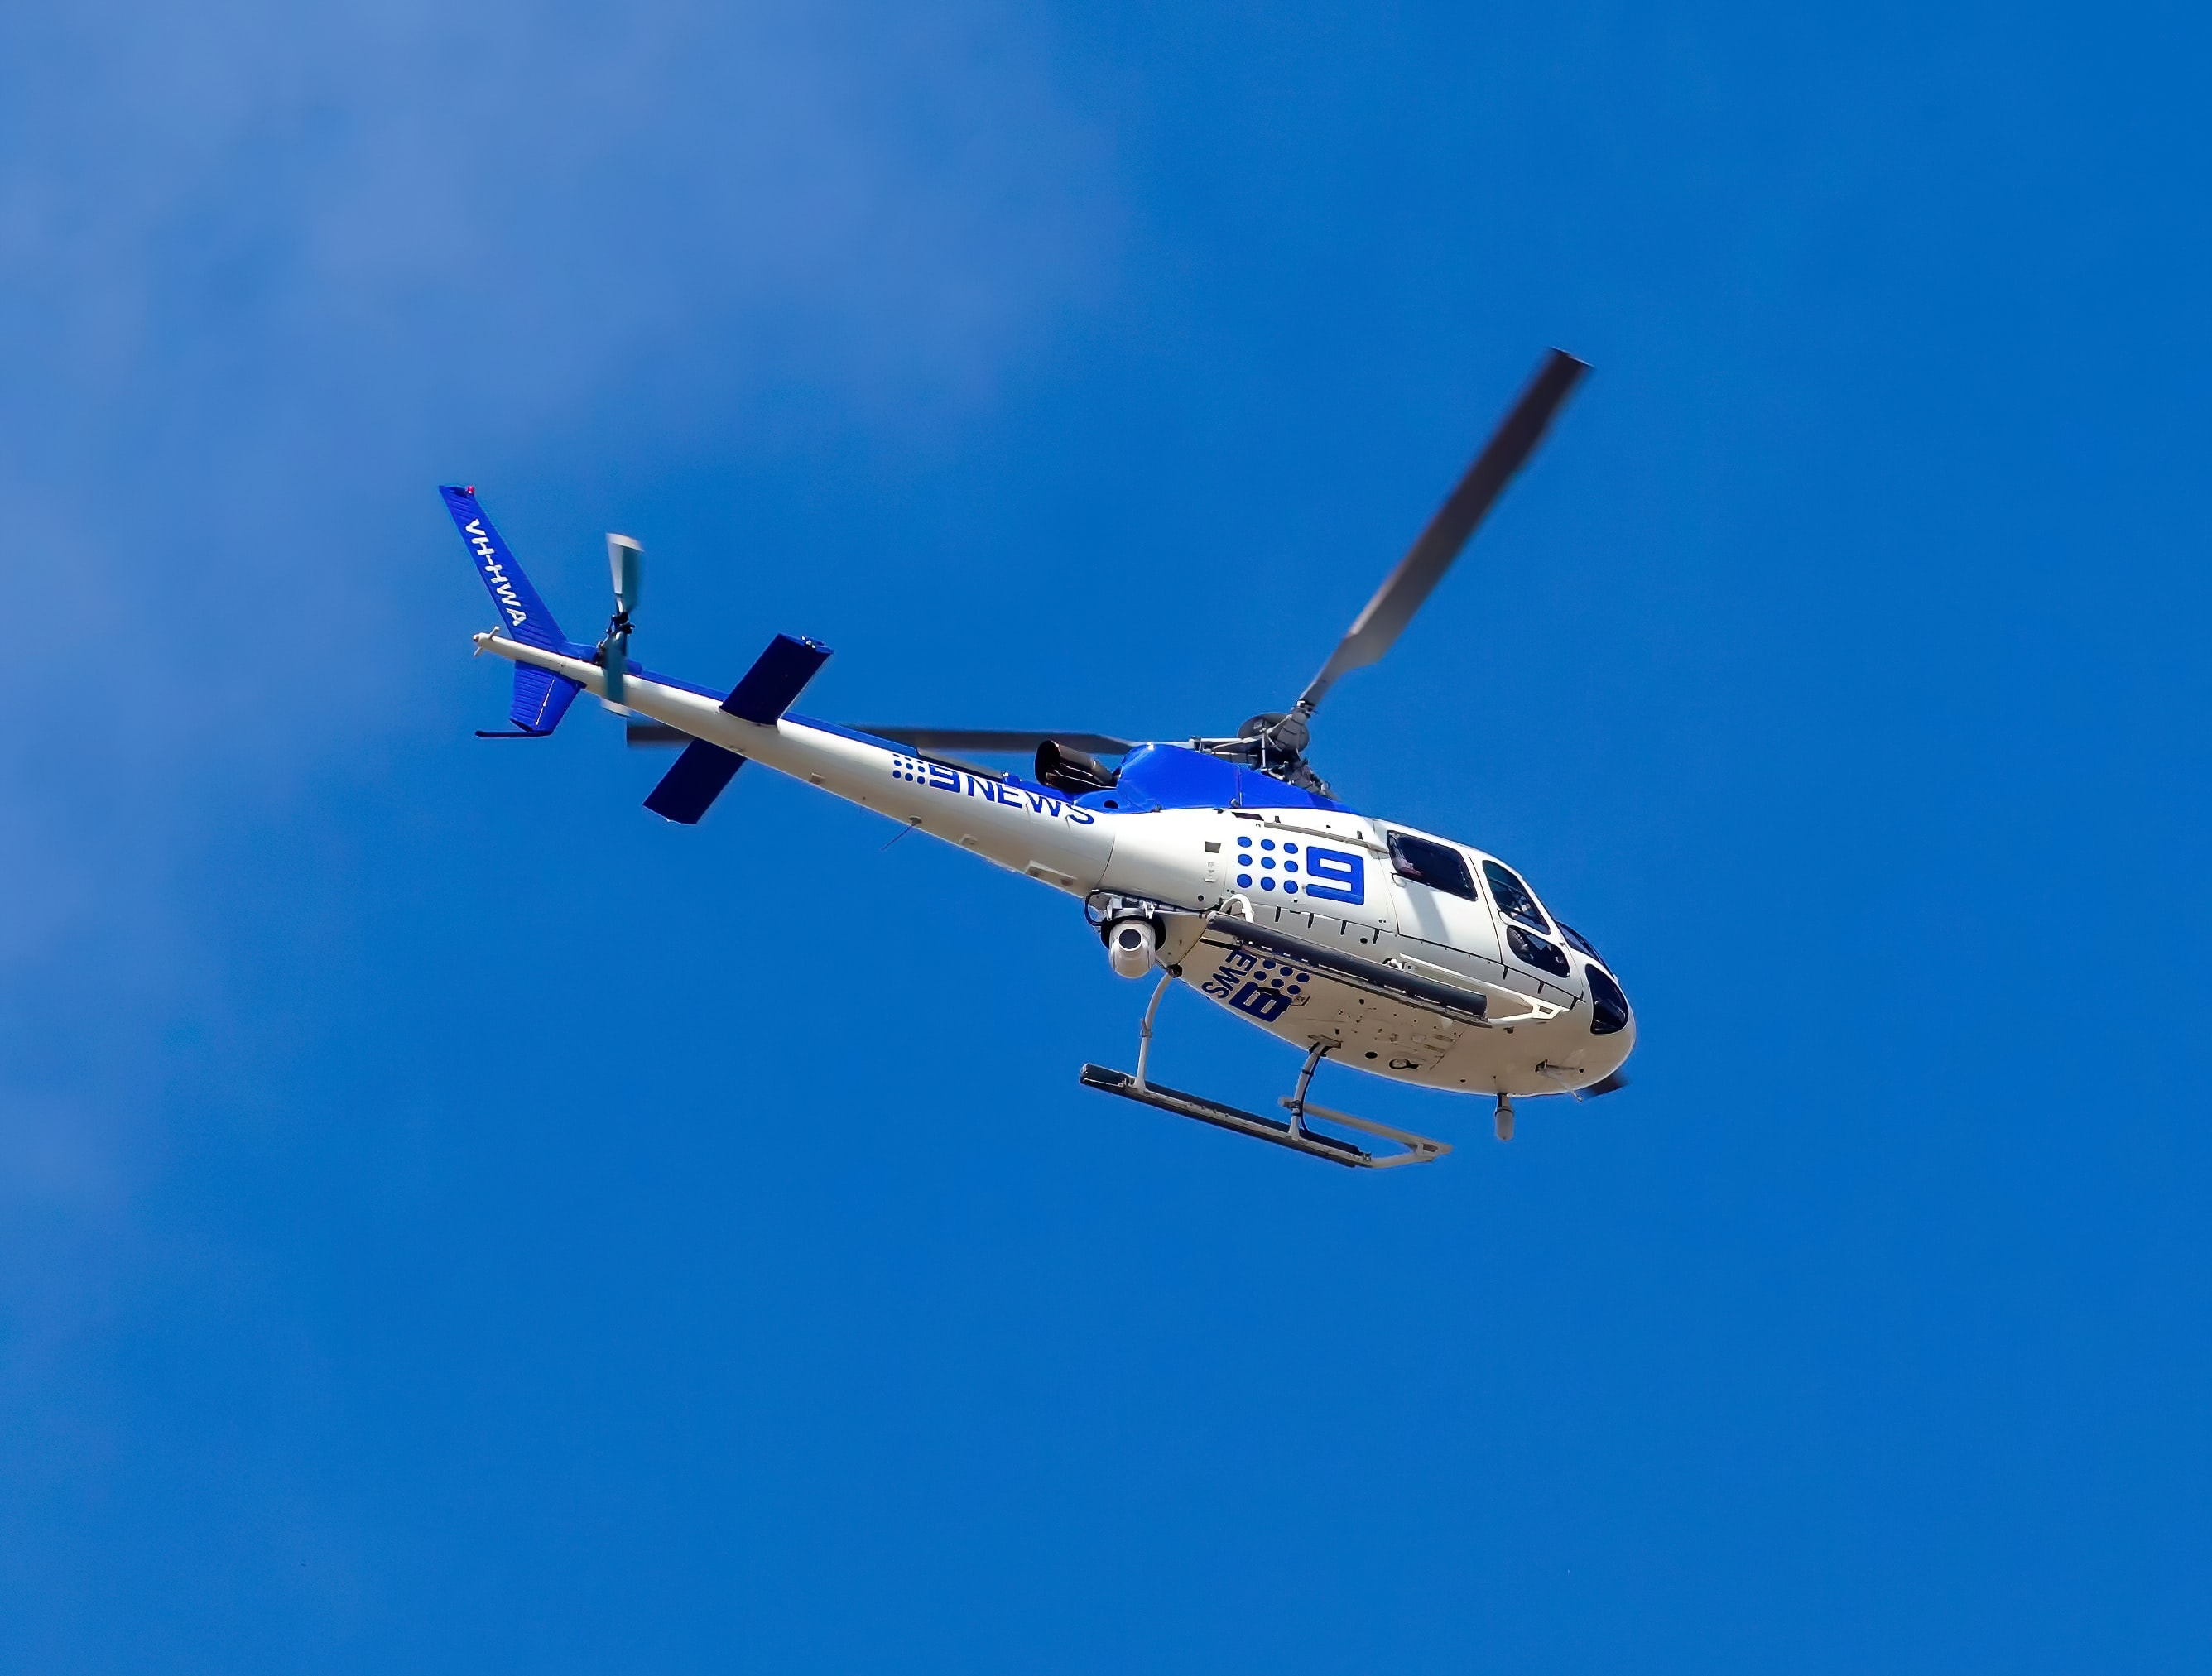 Facebook Live Best Practices - An image of a news helicopter